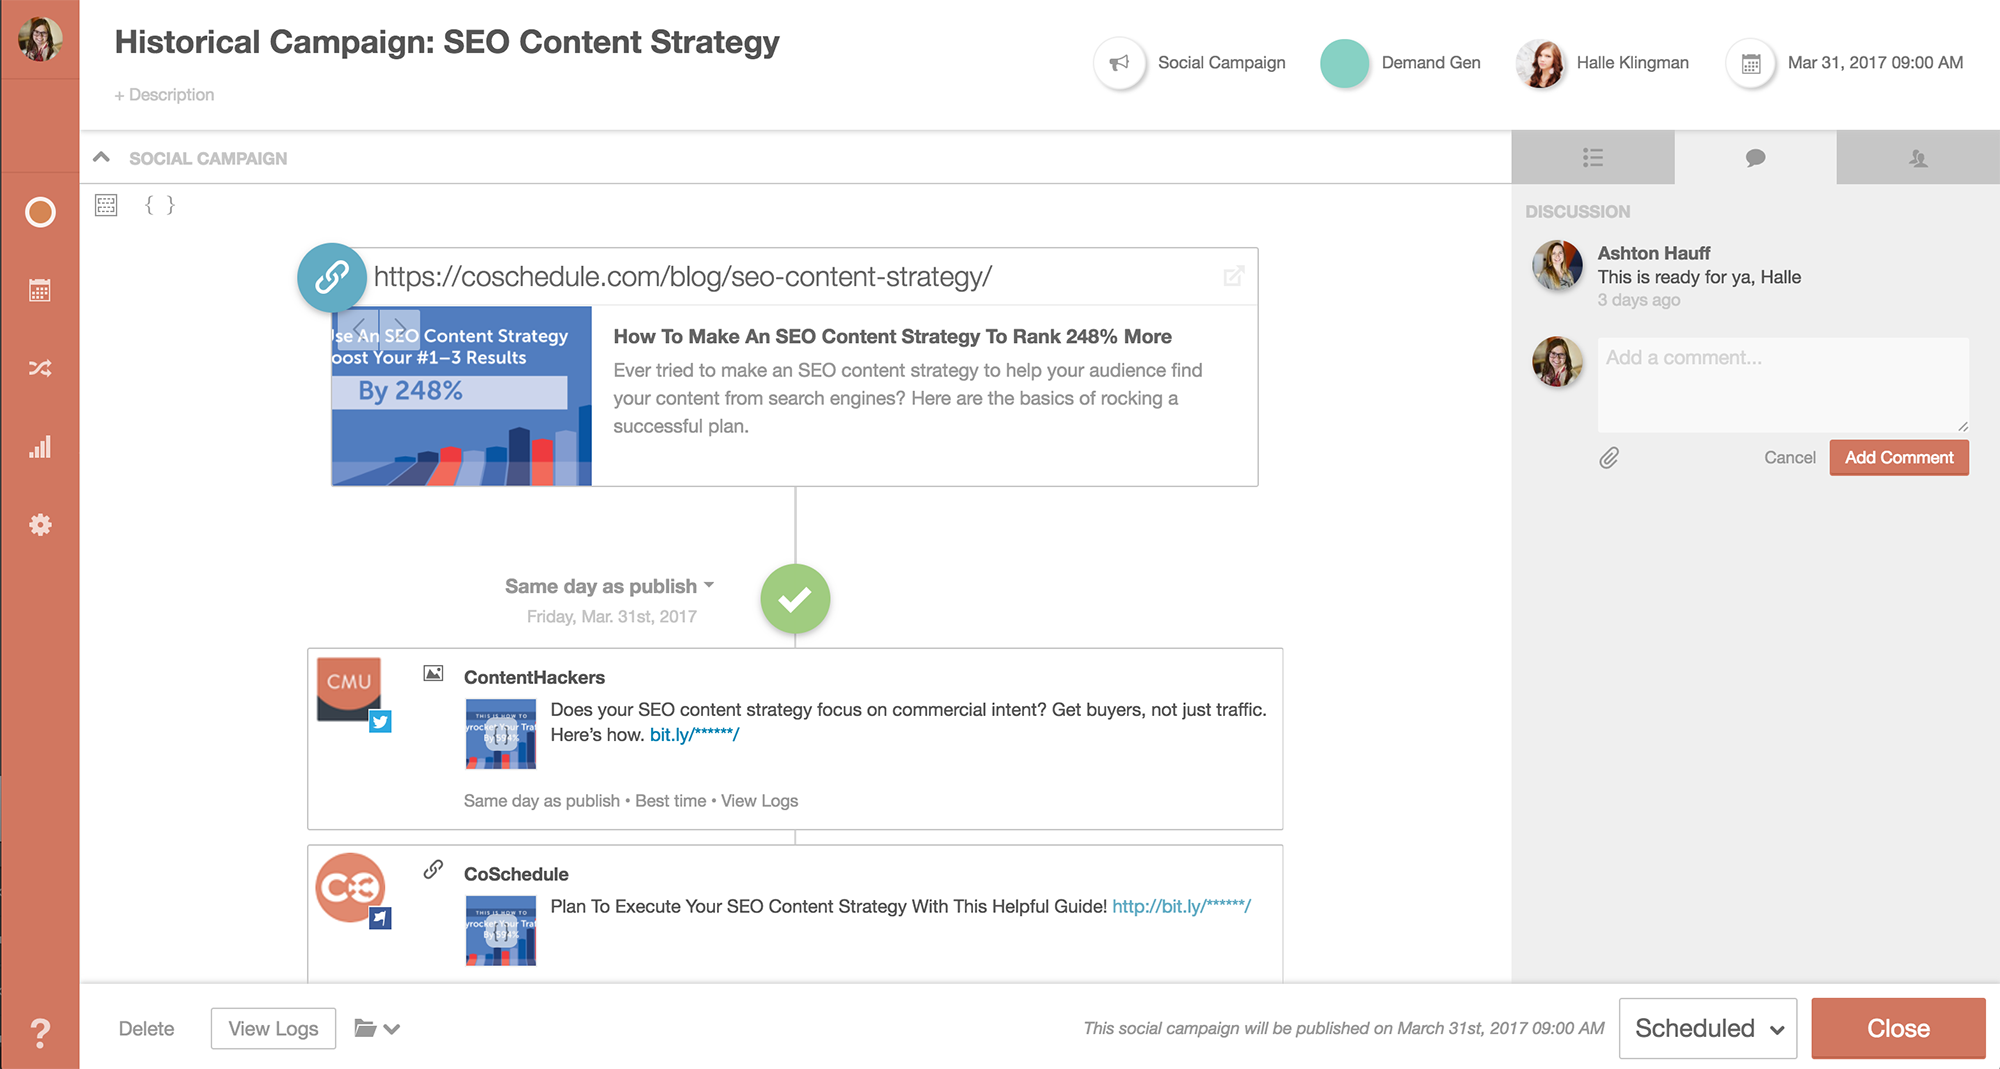 CoSchedule allows bloggers and social supervisors to collaborate on campaigns